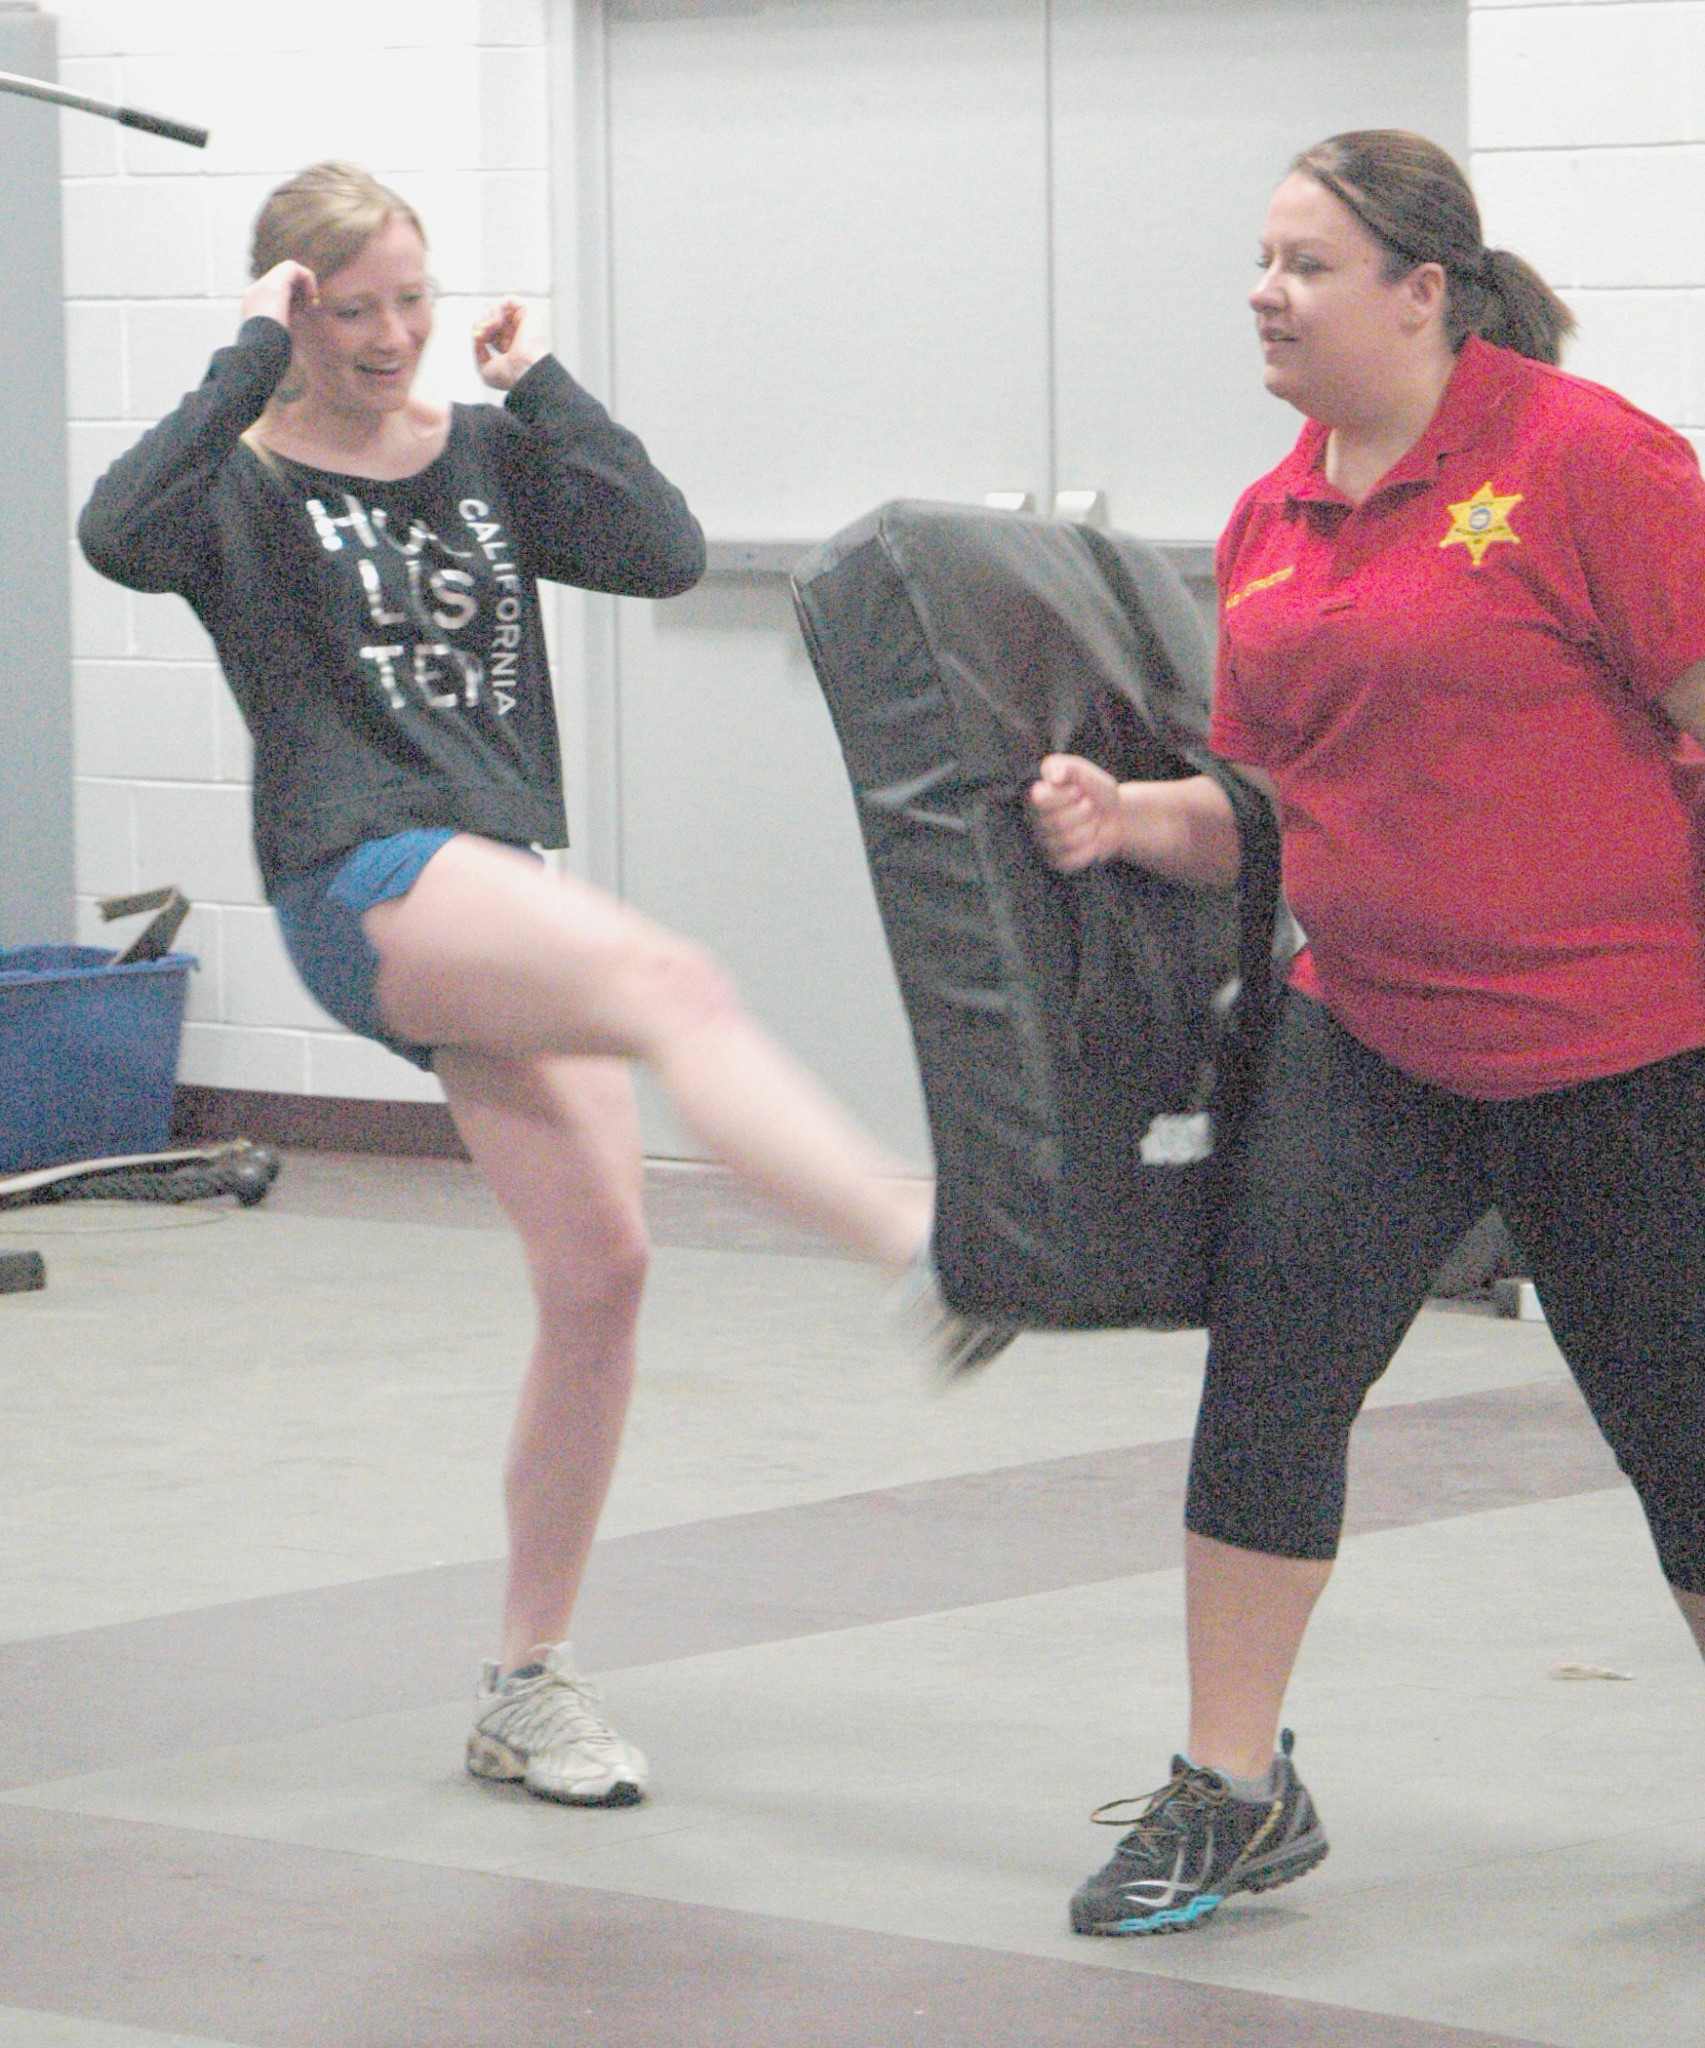 Sheriff's Departments teaches students self defense